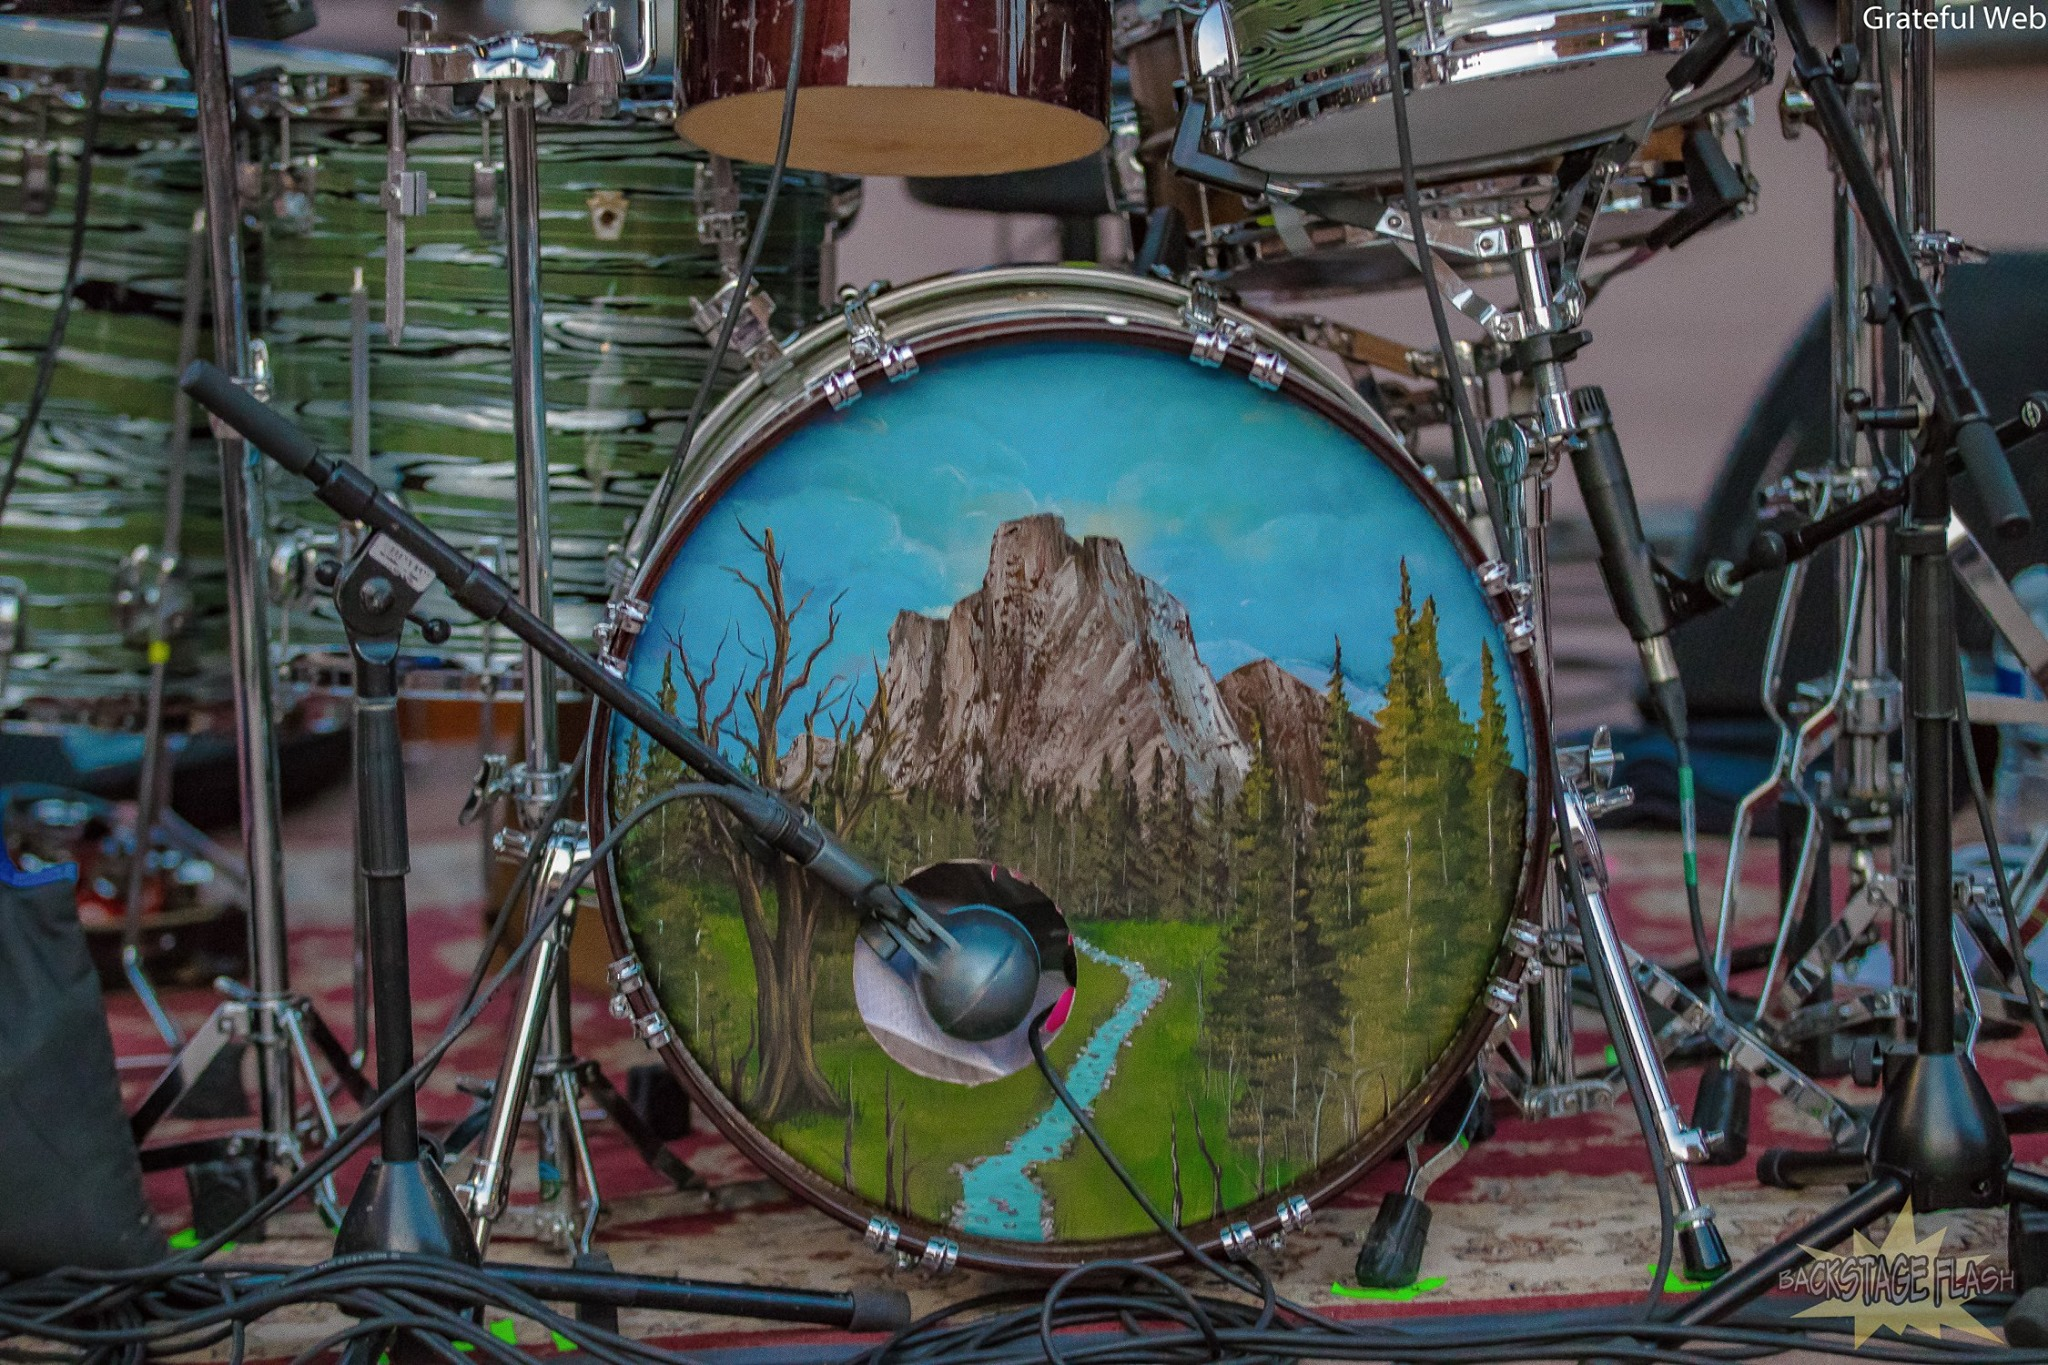 Joe Russo's drum kit